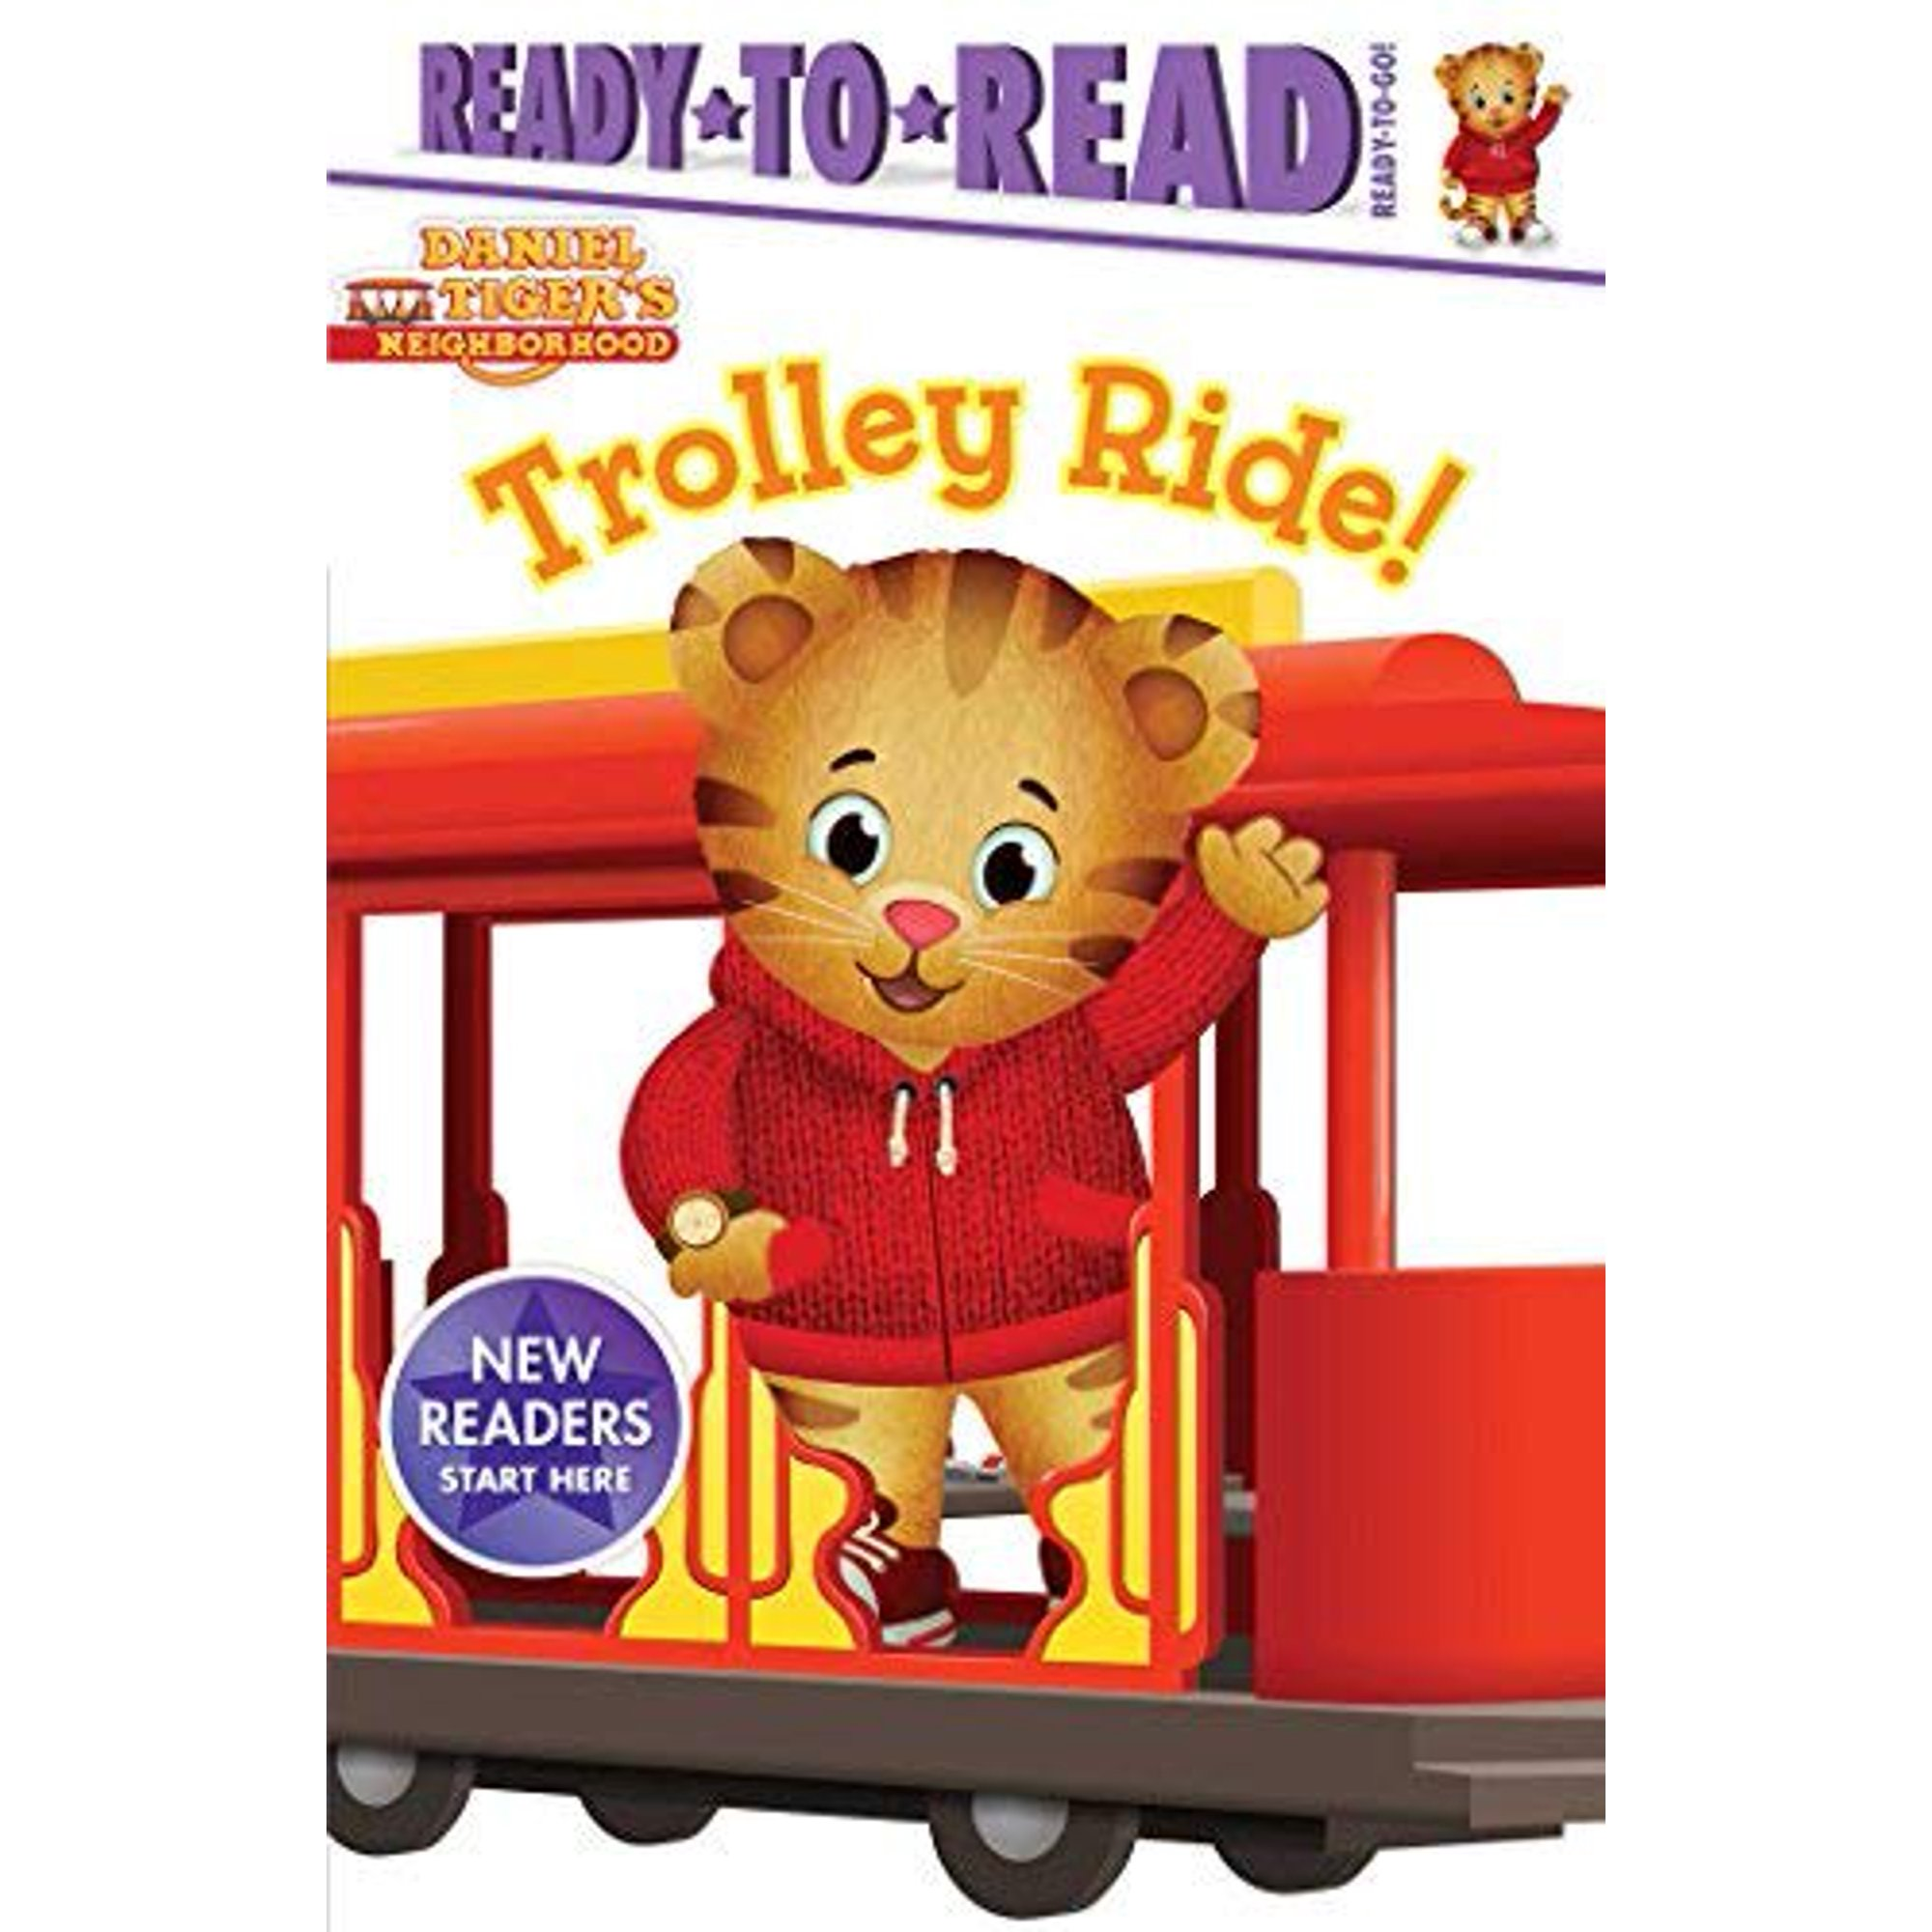 Trolley Ride! (Daniel Tiger's Neighborhood, Ready.